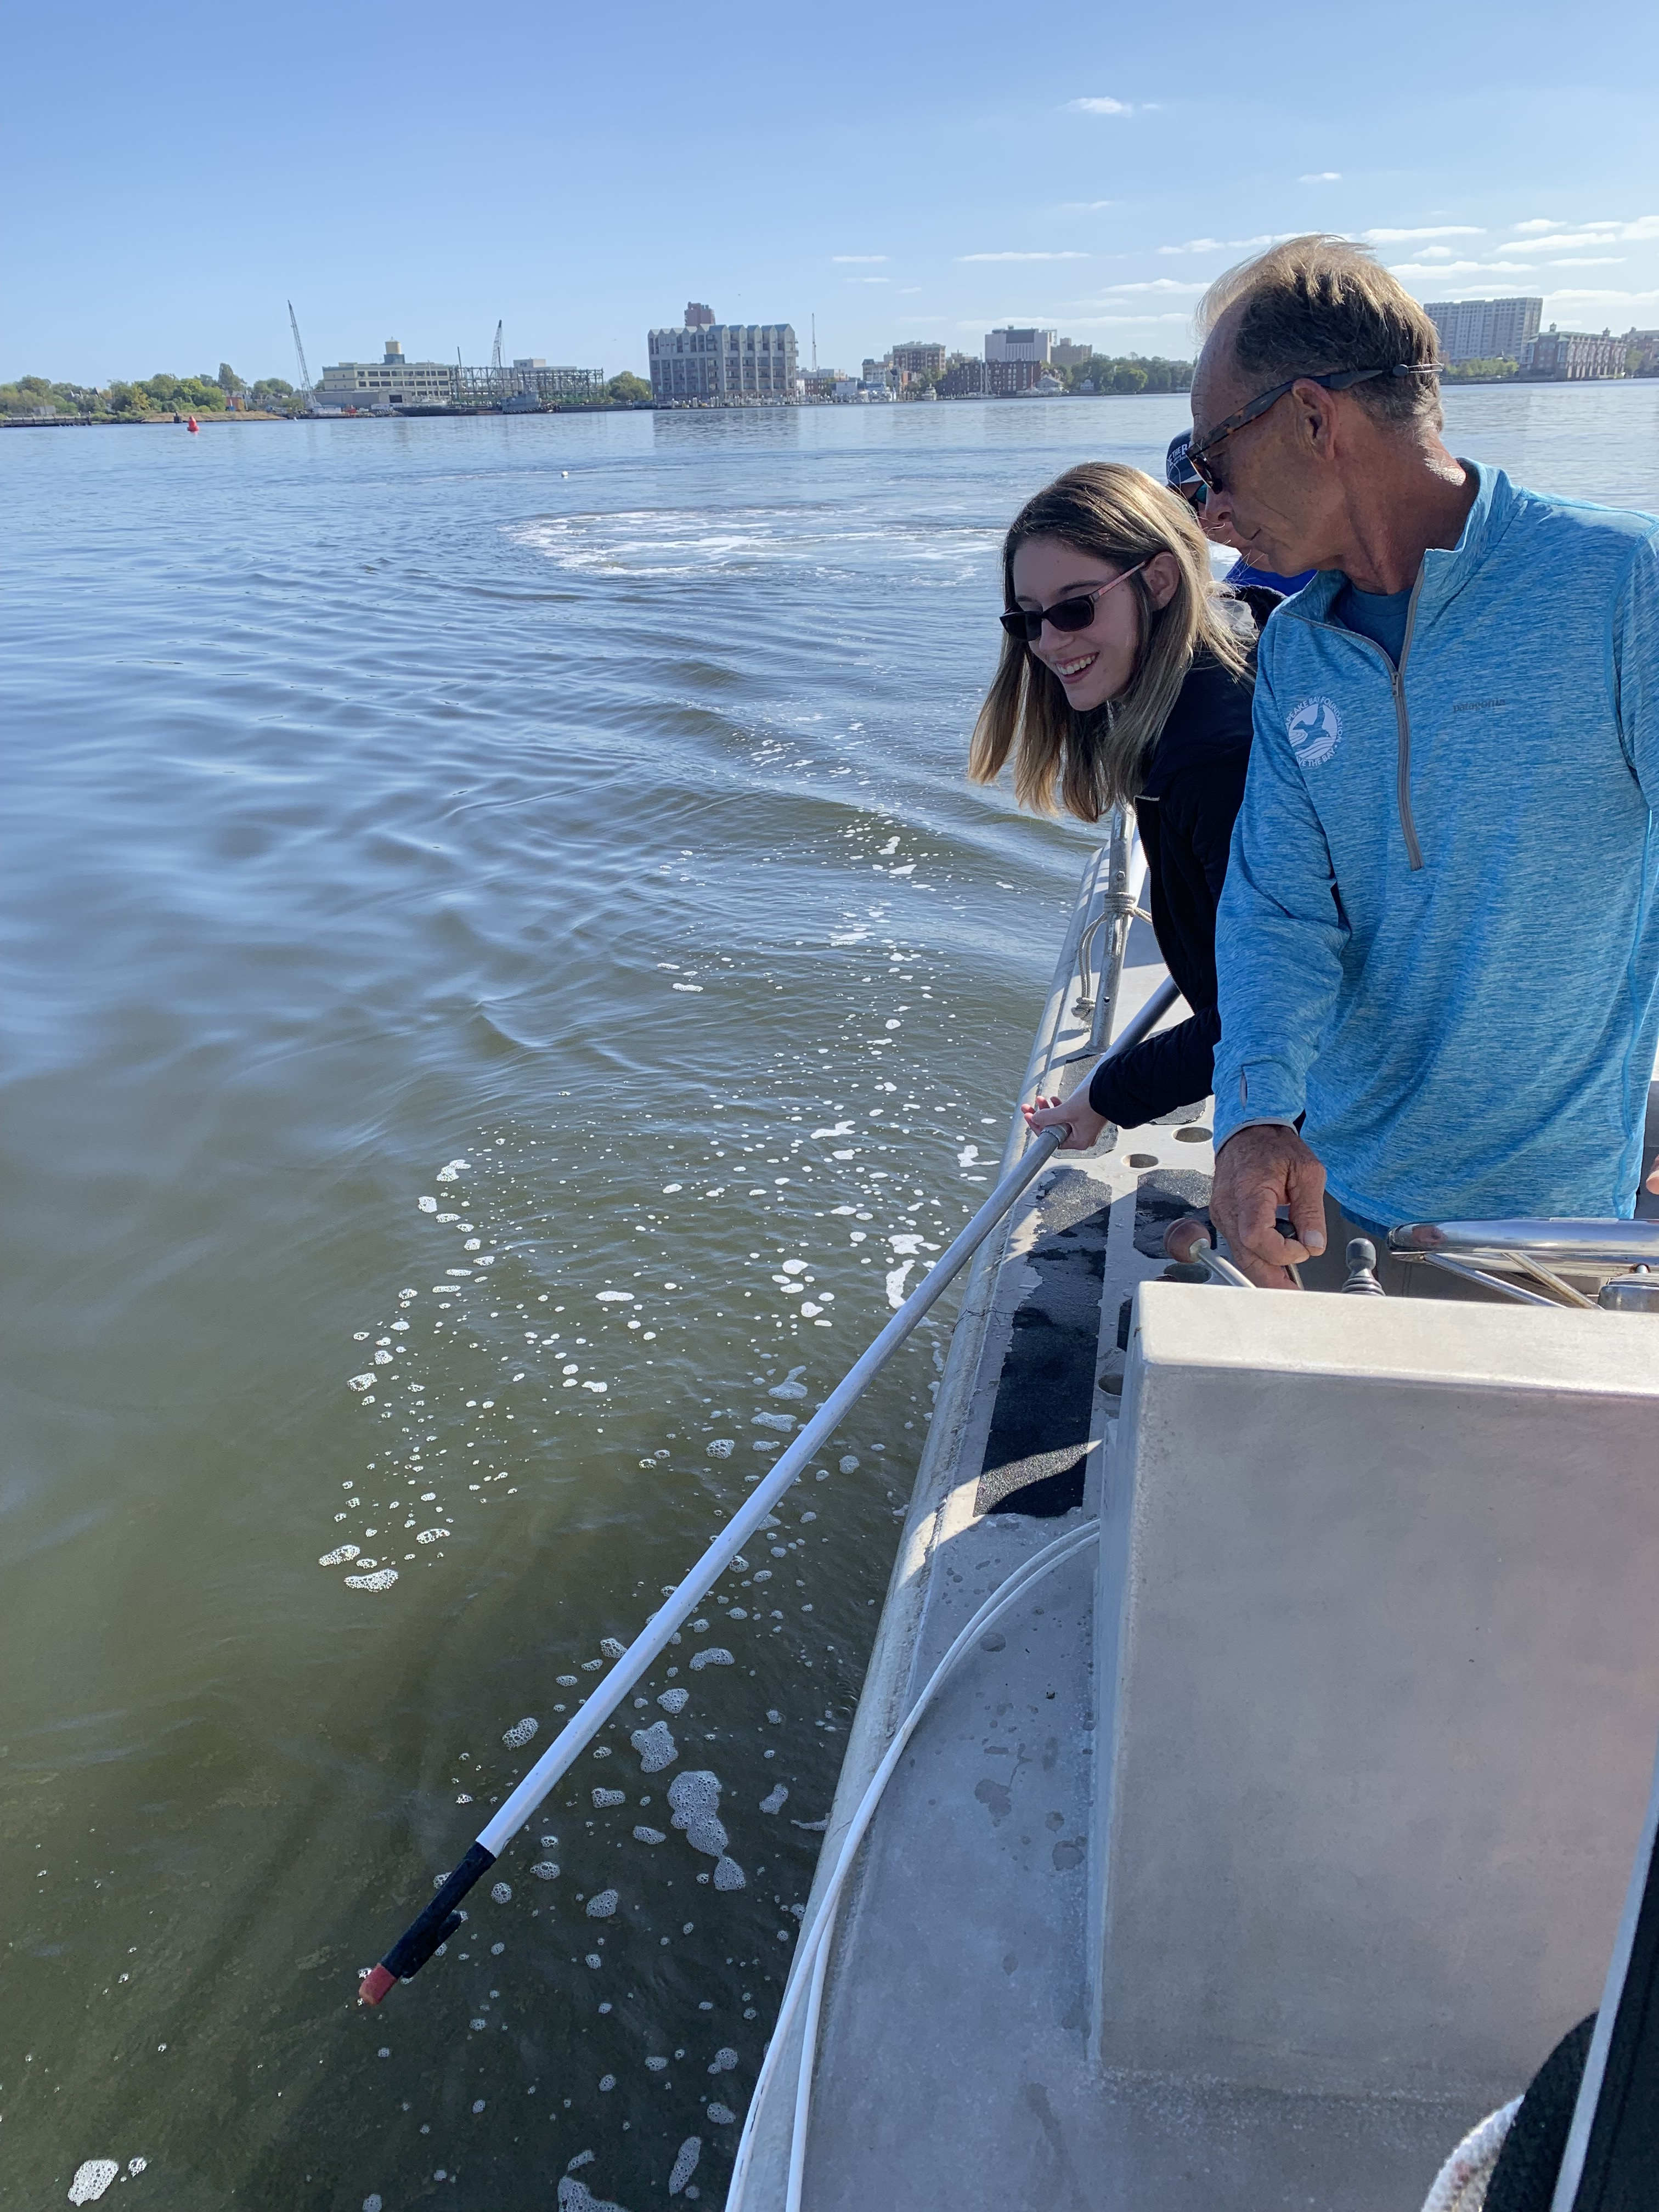 Ms. Danielle Spach hooks a crab pot while Mr. Jimmy Sollner provides instructions.